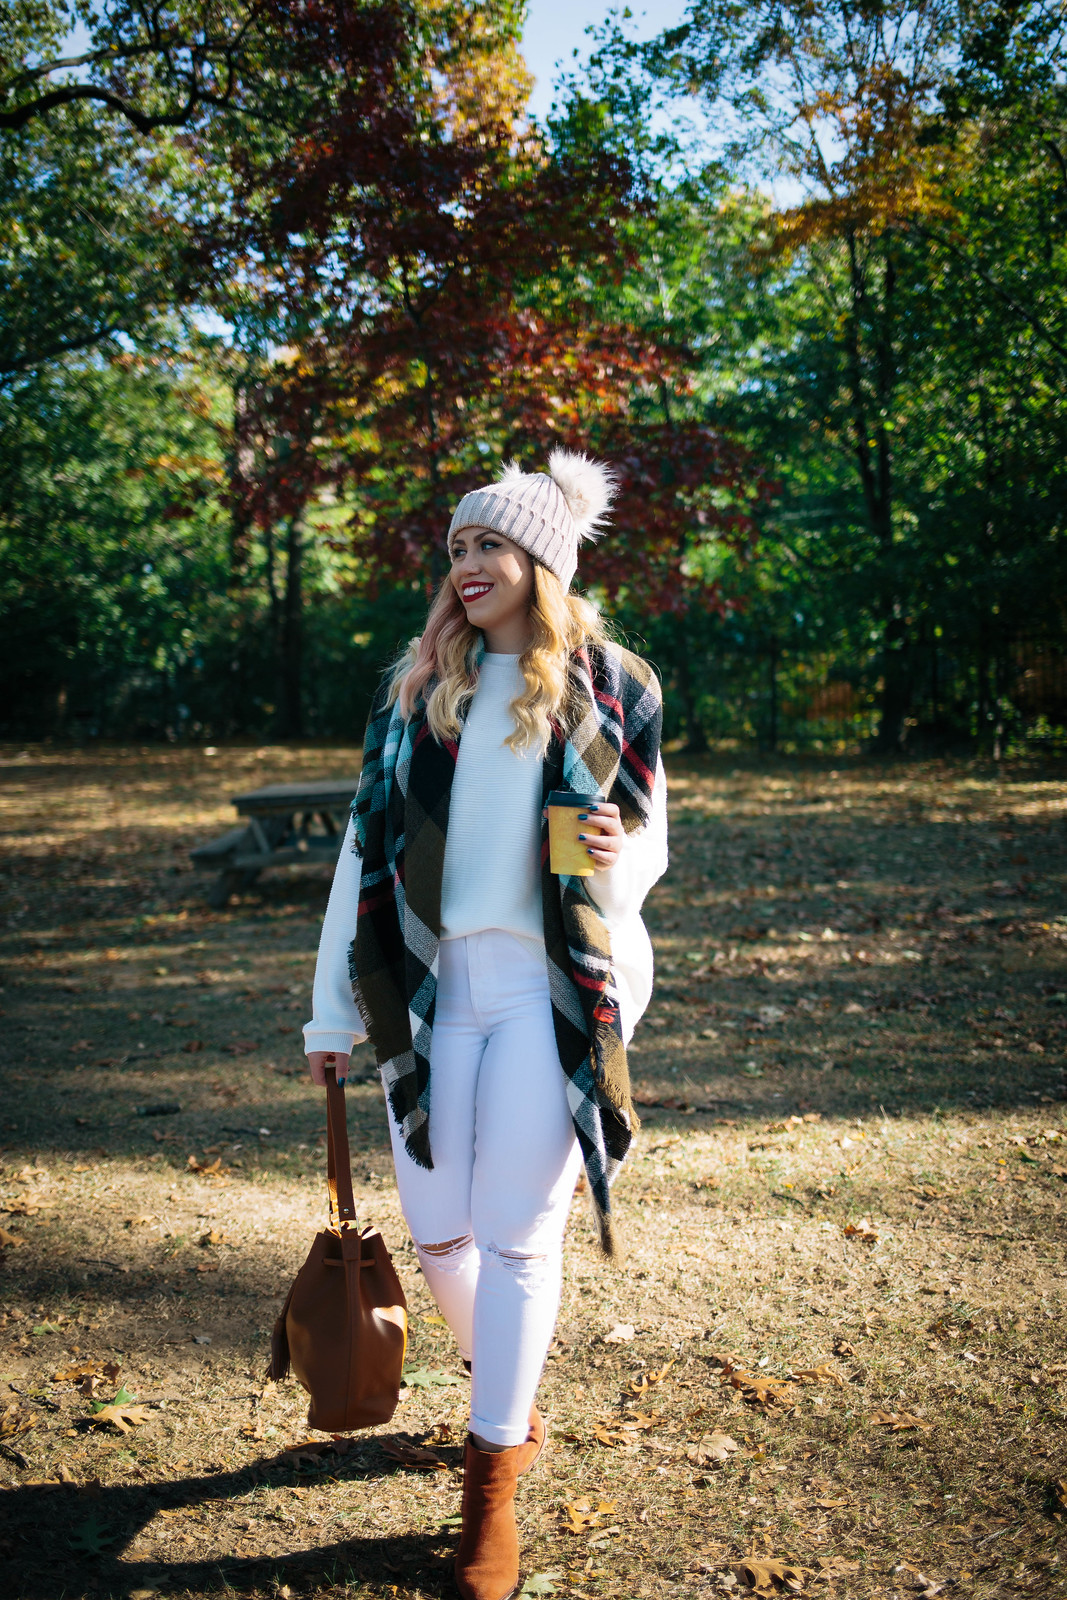 The Festive Winter White Outfit You Need to Recreate